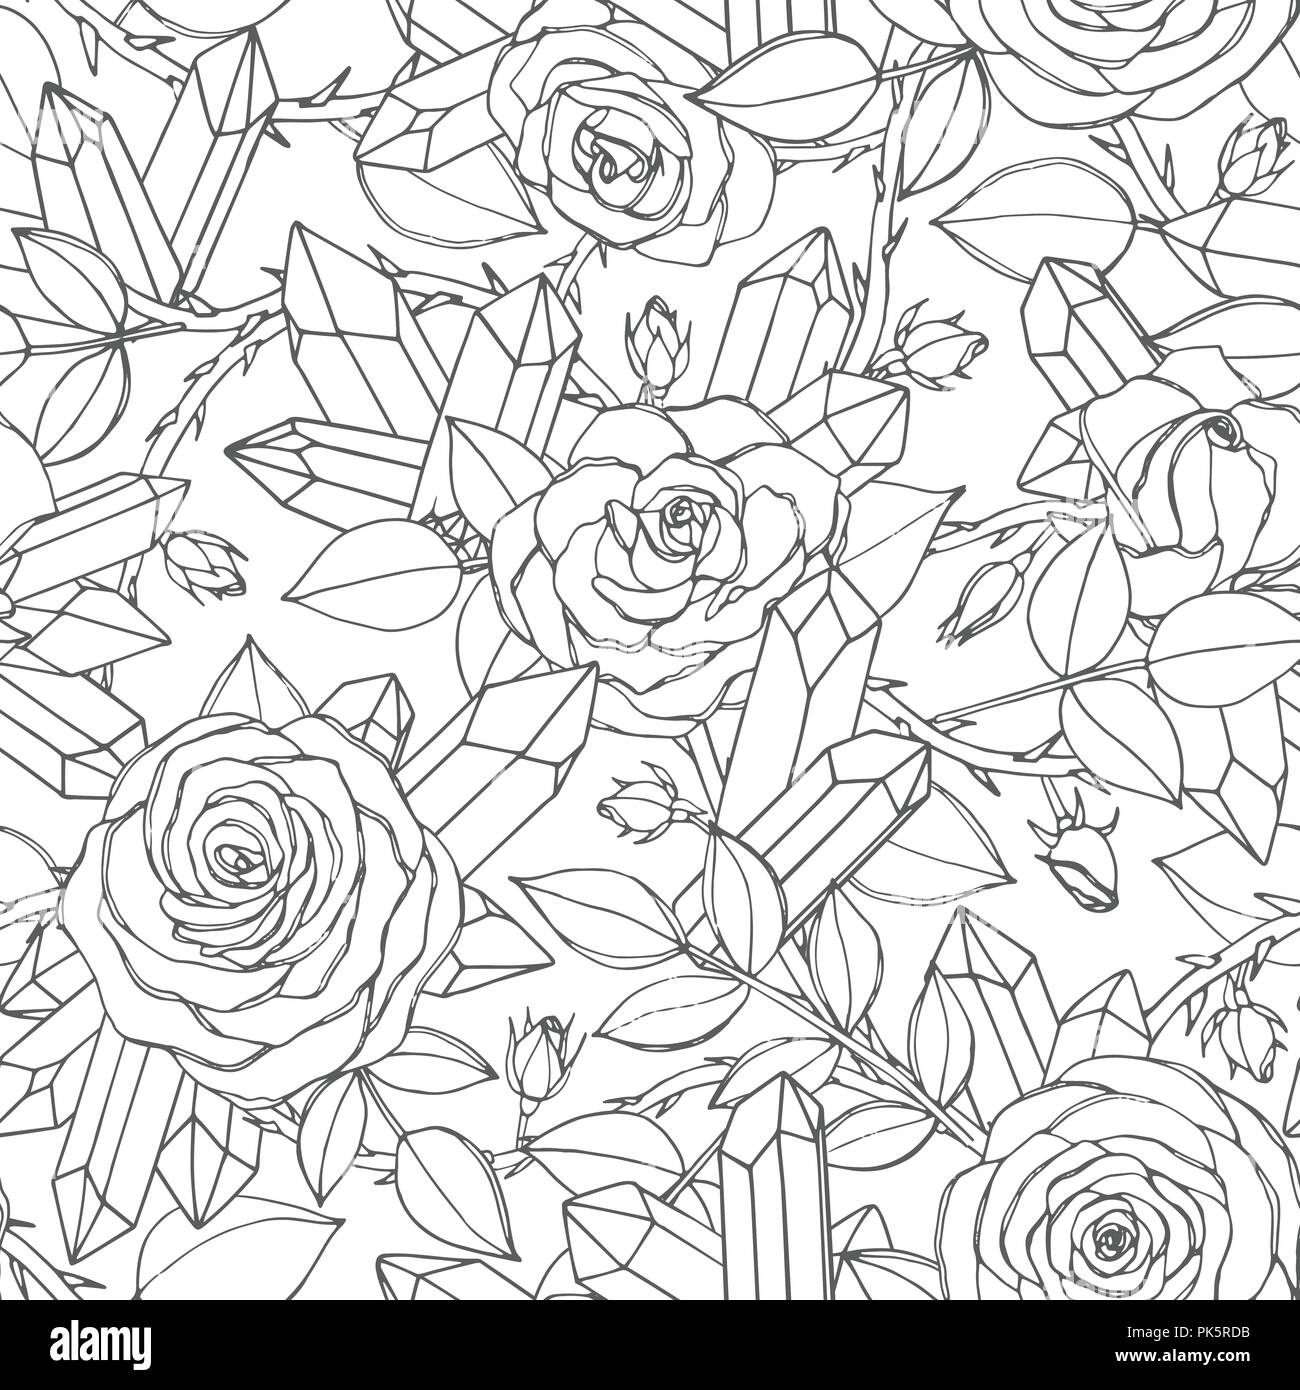 Vector hand drawn seamless pattern of rose flowers with buds, leaves, thorny stems and crystals line art on the white background. Floral ornament of b Stock Vector